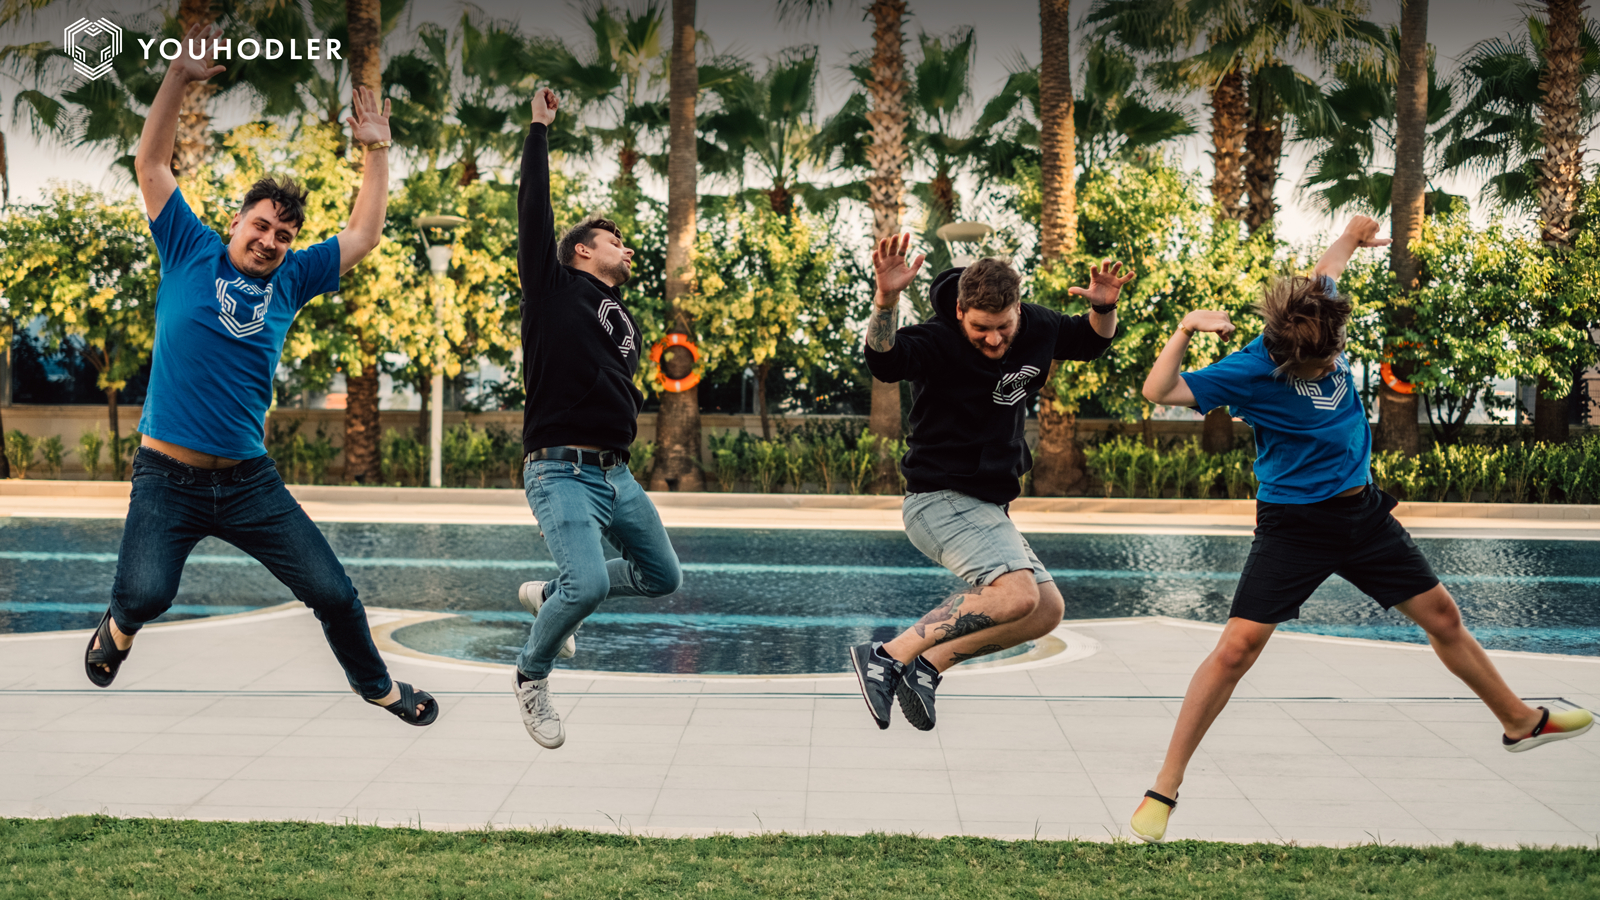 the youhodler team jumps in mid-air, arms raised in celebration.